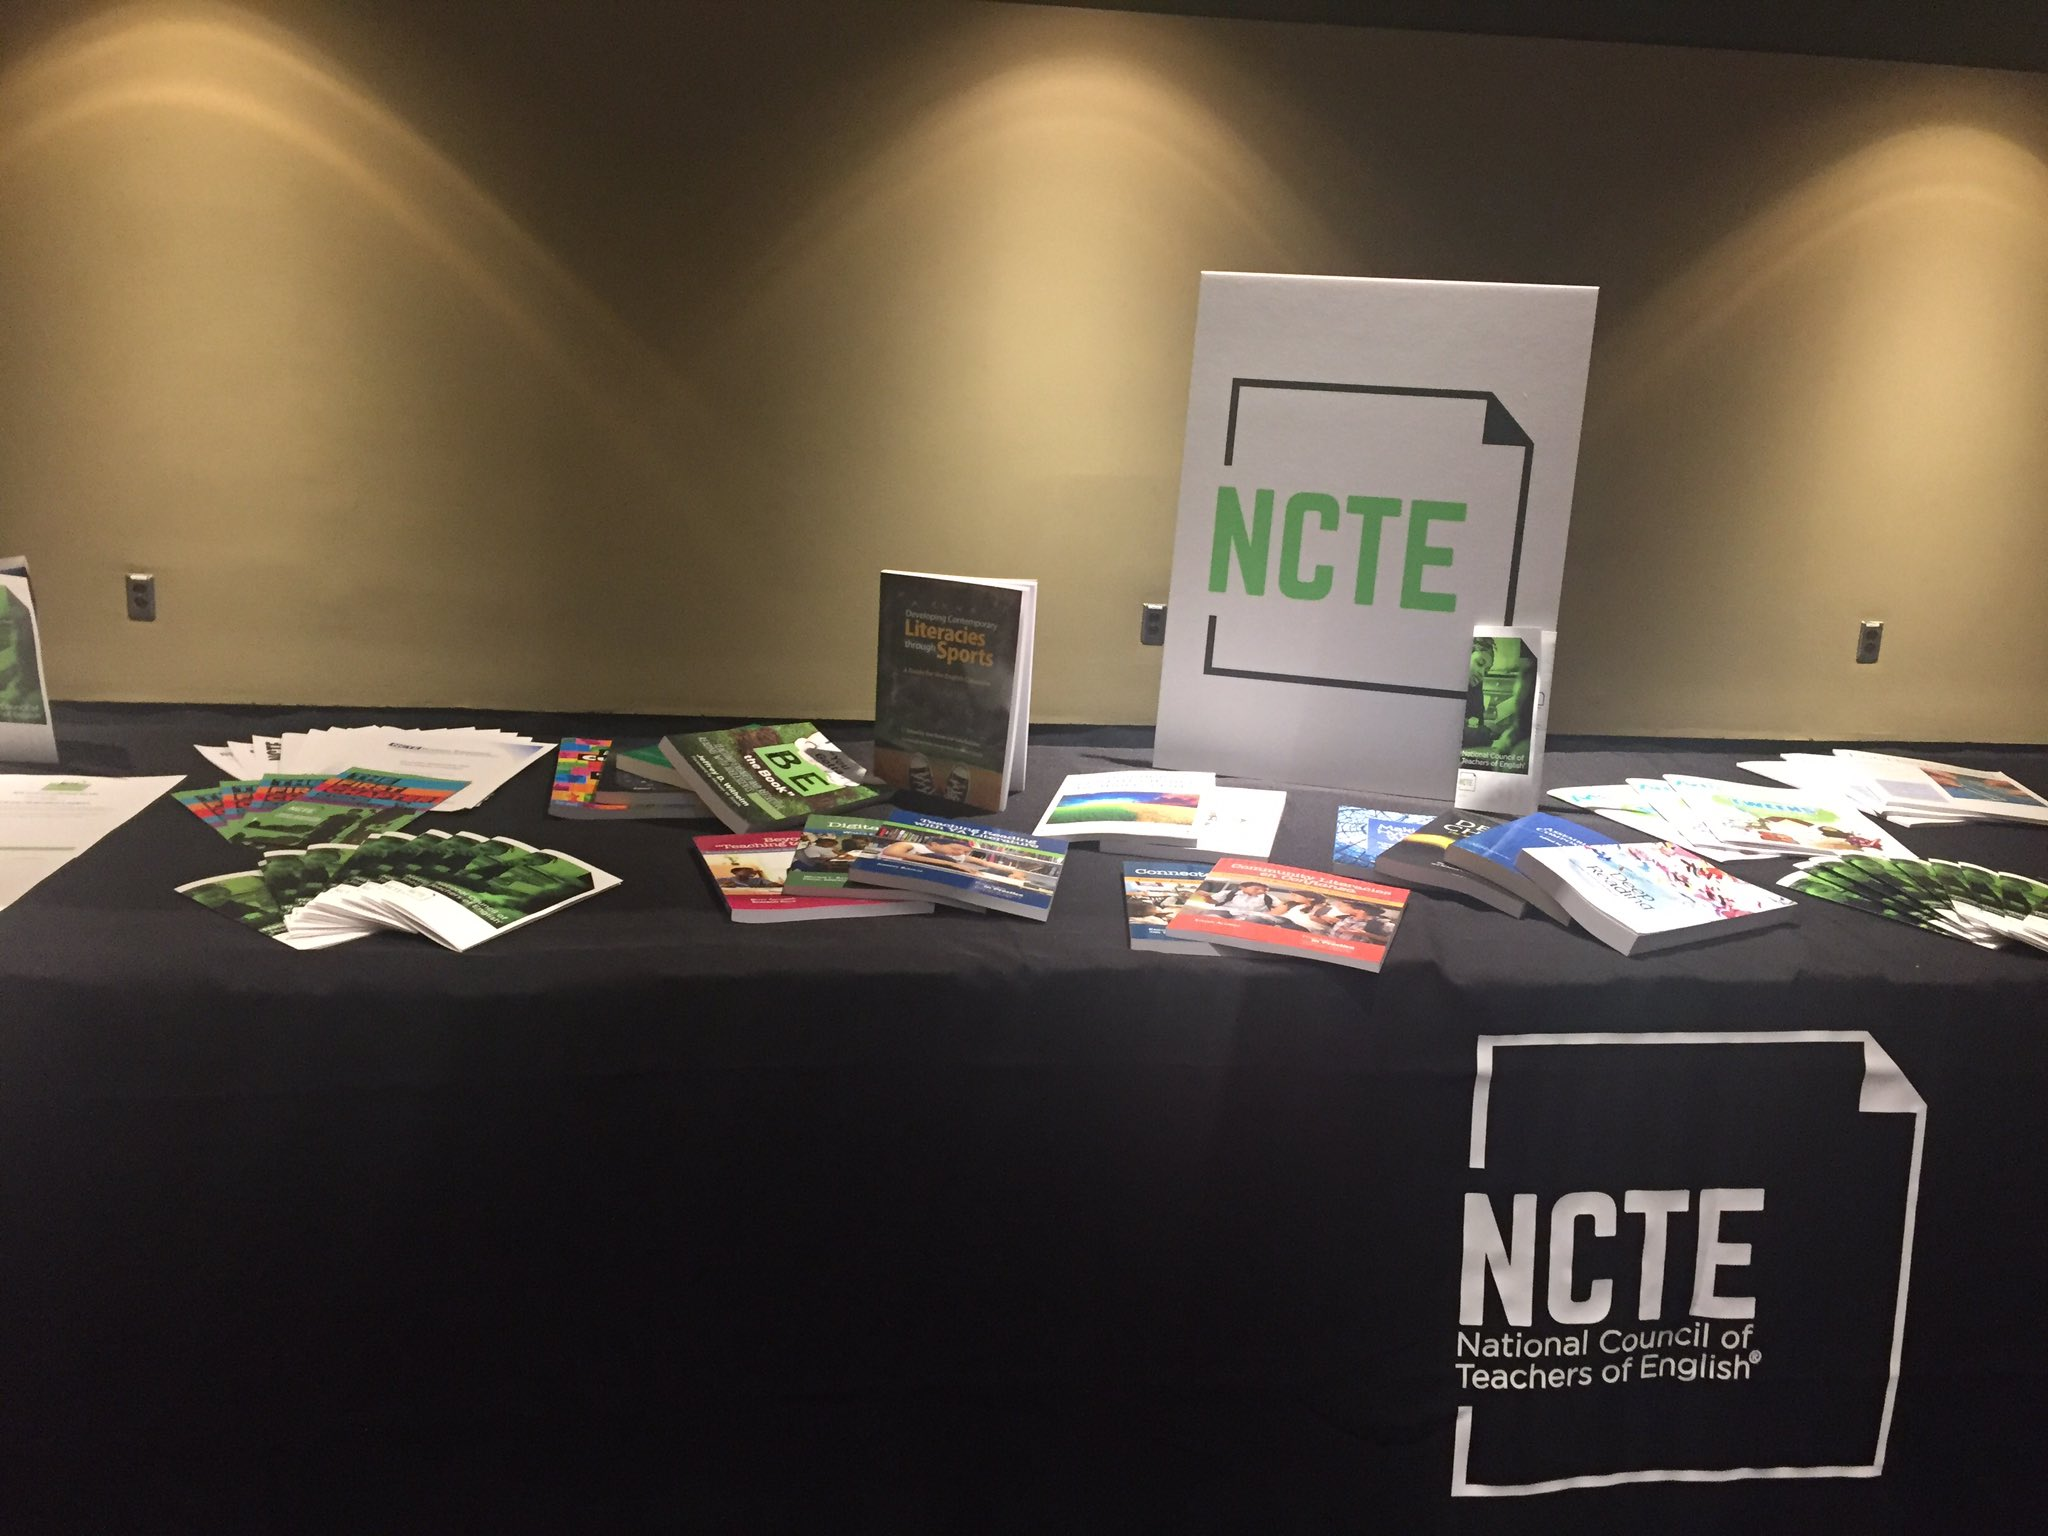 Ready to kick off #NCTEaffiliate meeting! https://t.co/2N2AvzEBhV